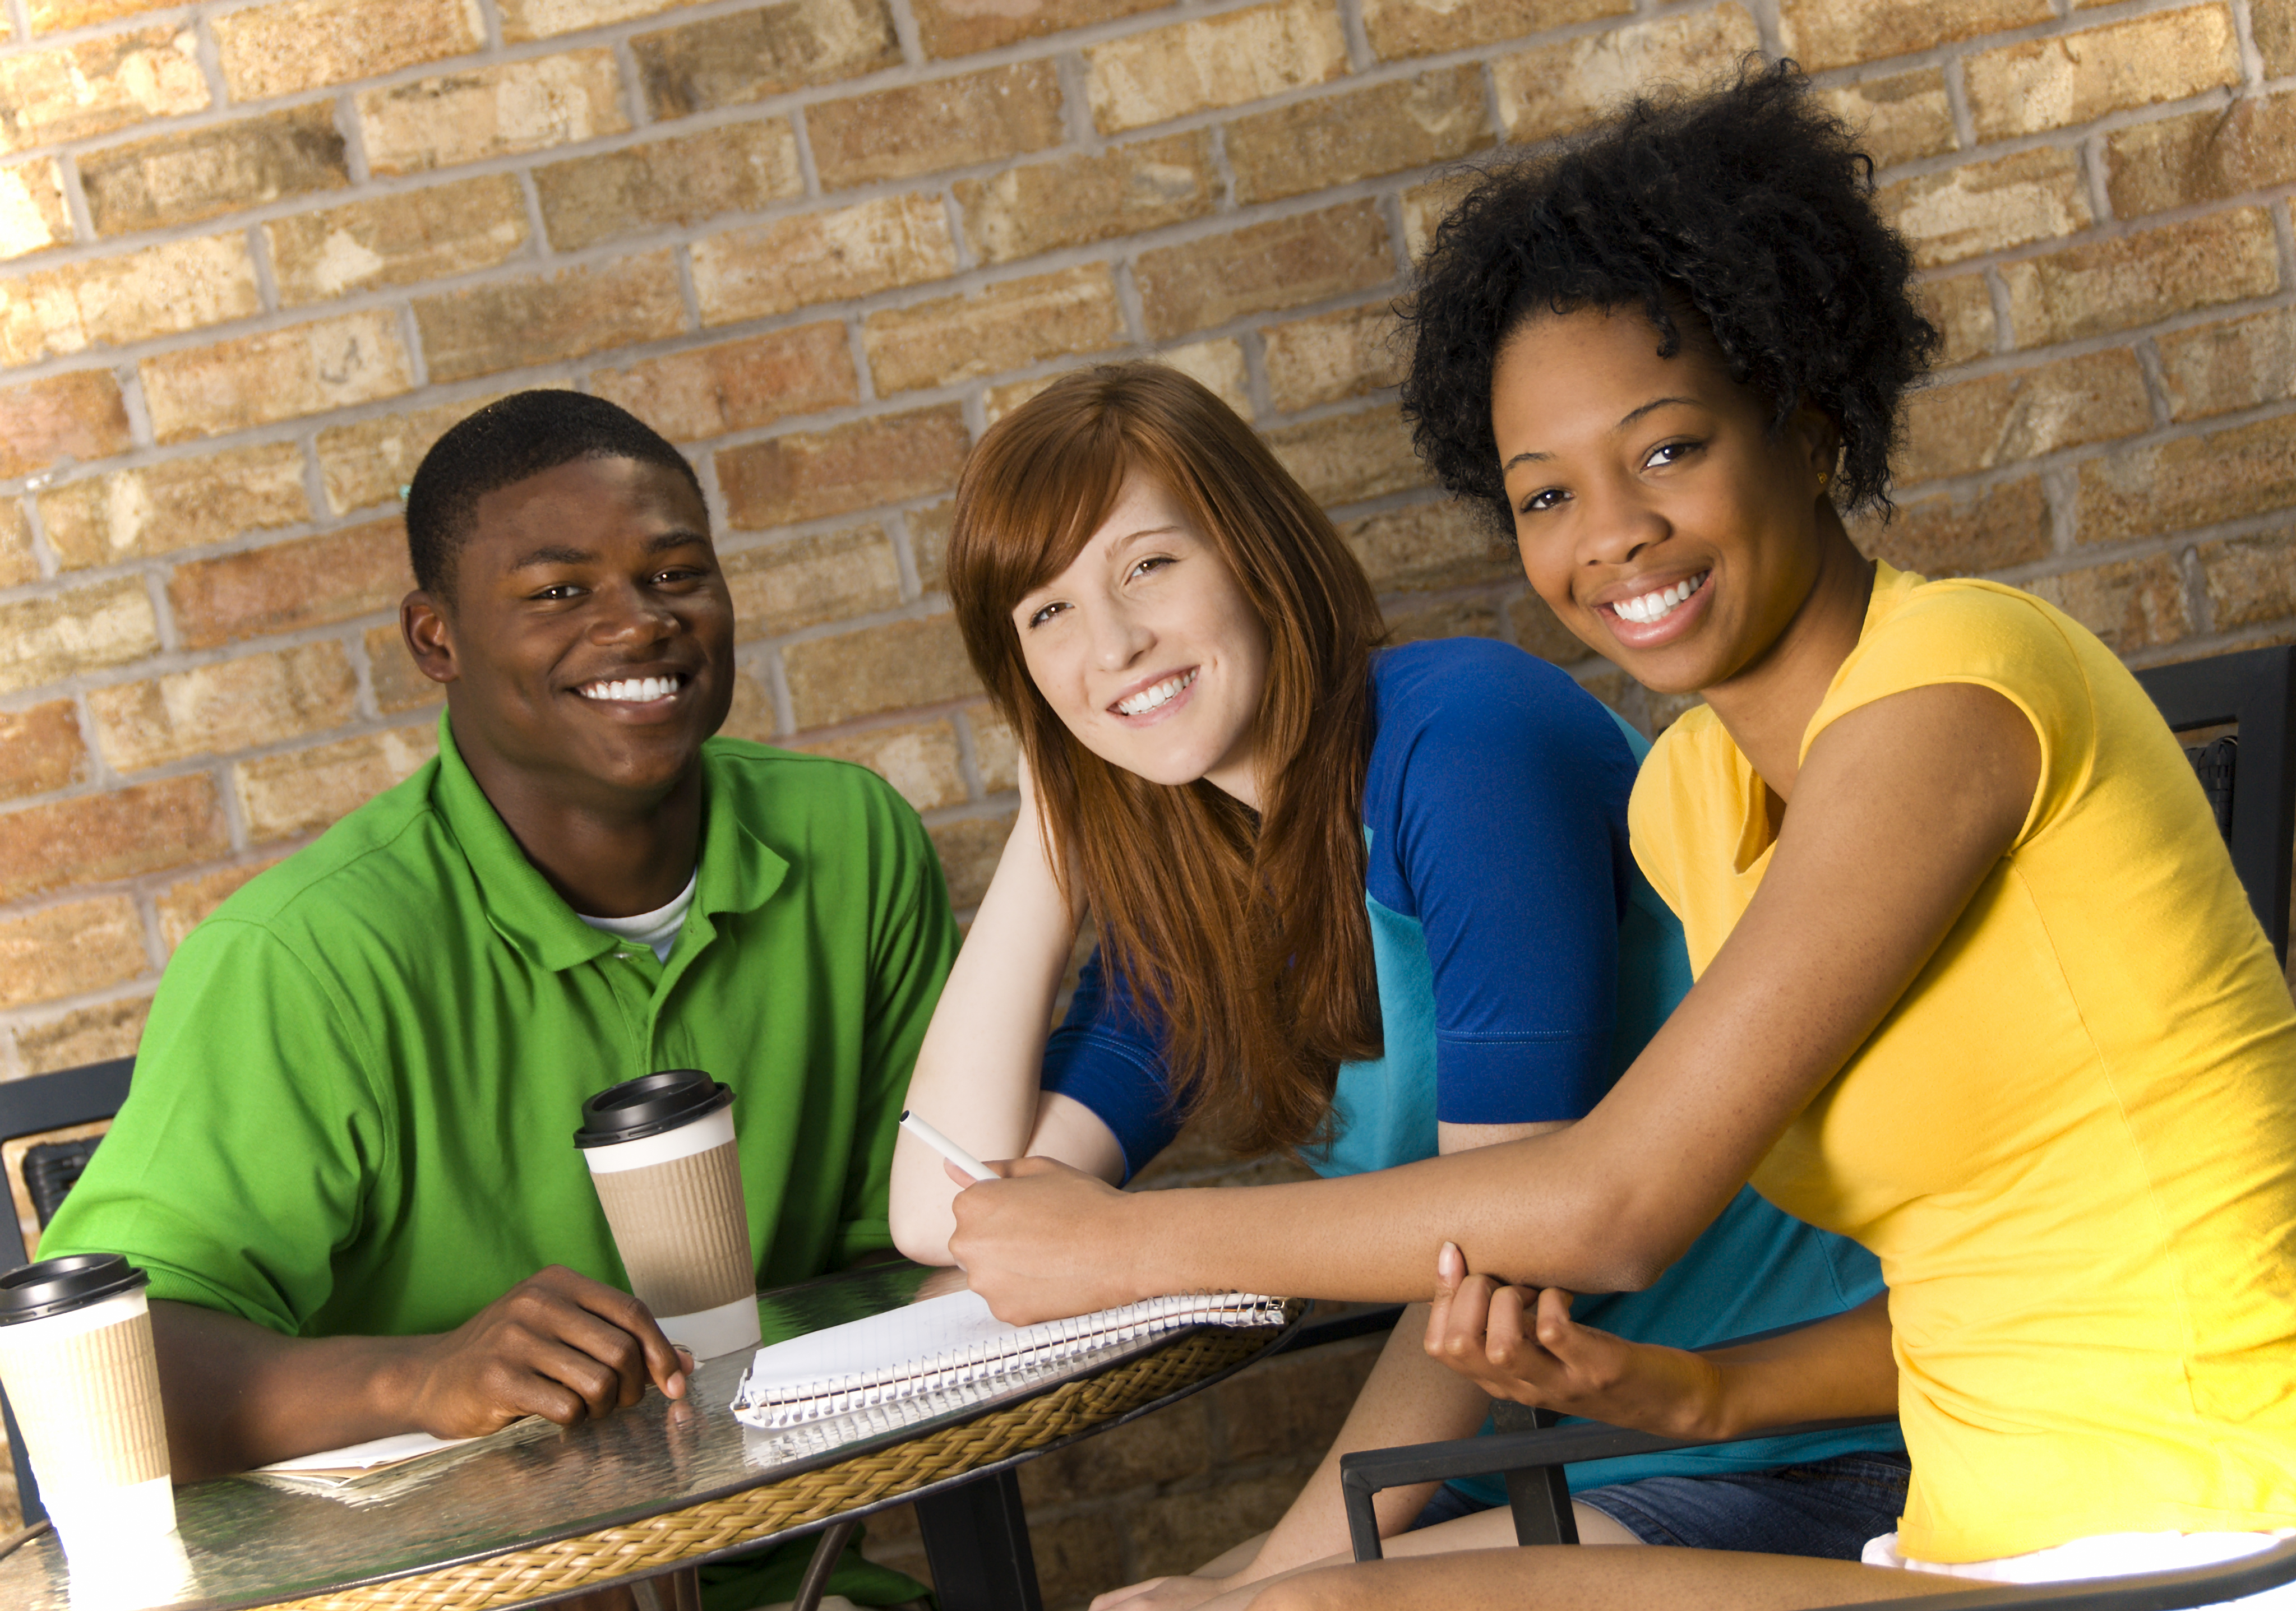 three smiling college aged students